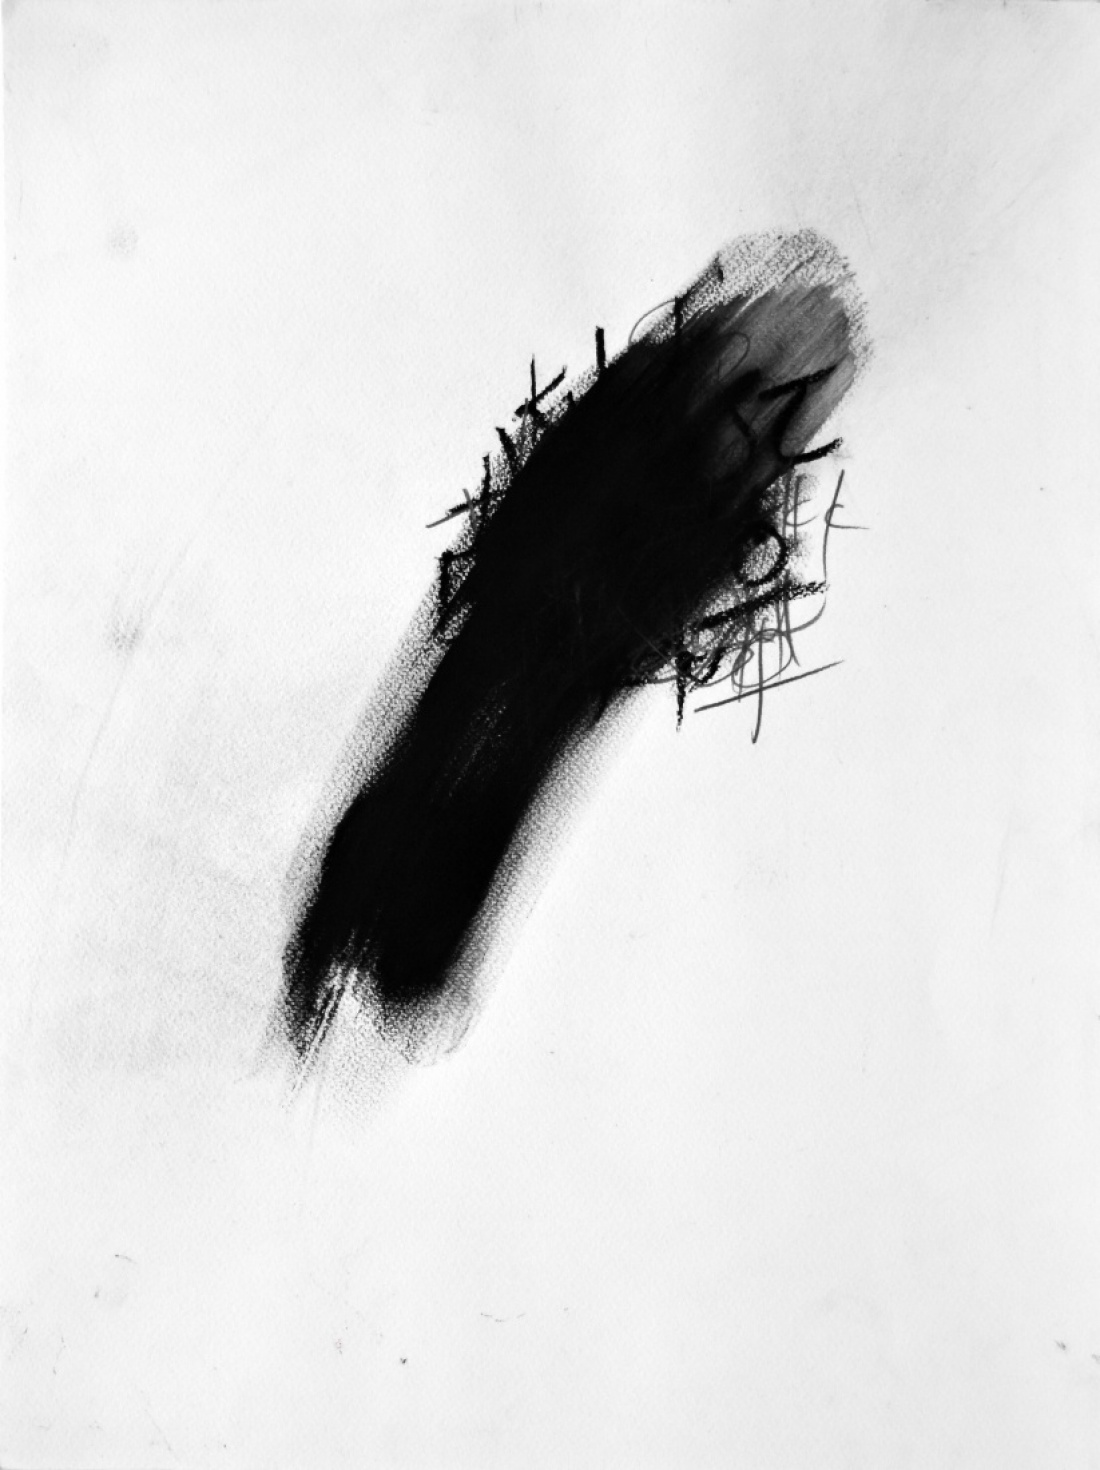 Untitled (Tongue) from the Series VOJ 2017/18, Charcoal and Tar on Paper, 60x40 cm